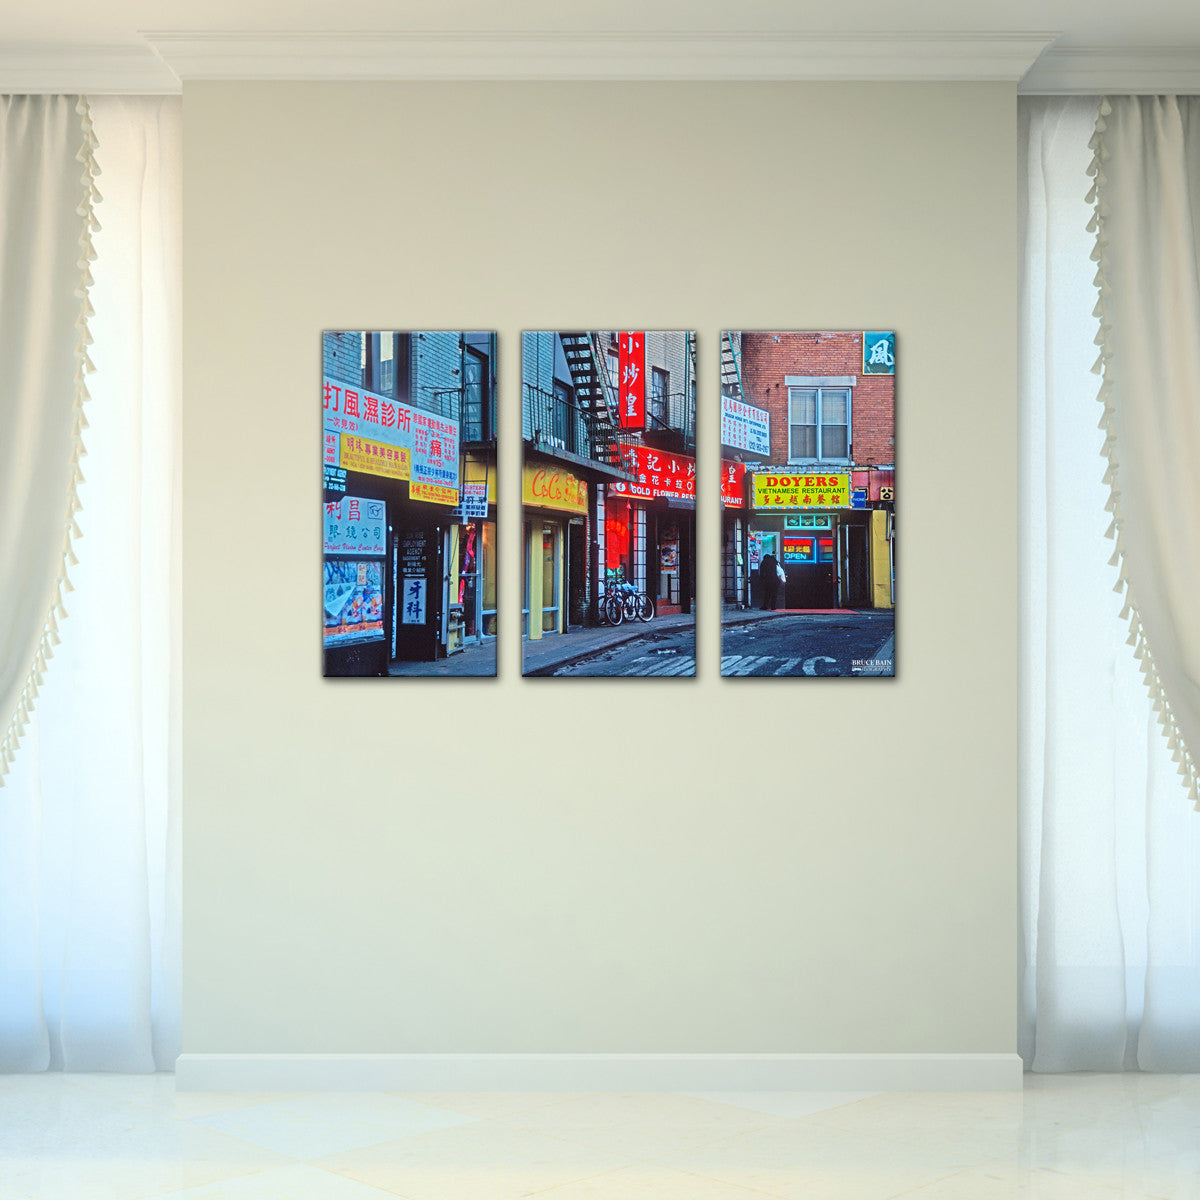 Bruce Bain 'Doyers Street' 24x36 inch Canvas Wall Art (3-Pc set)